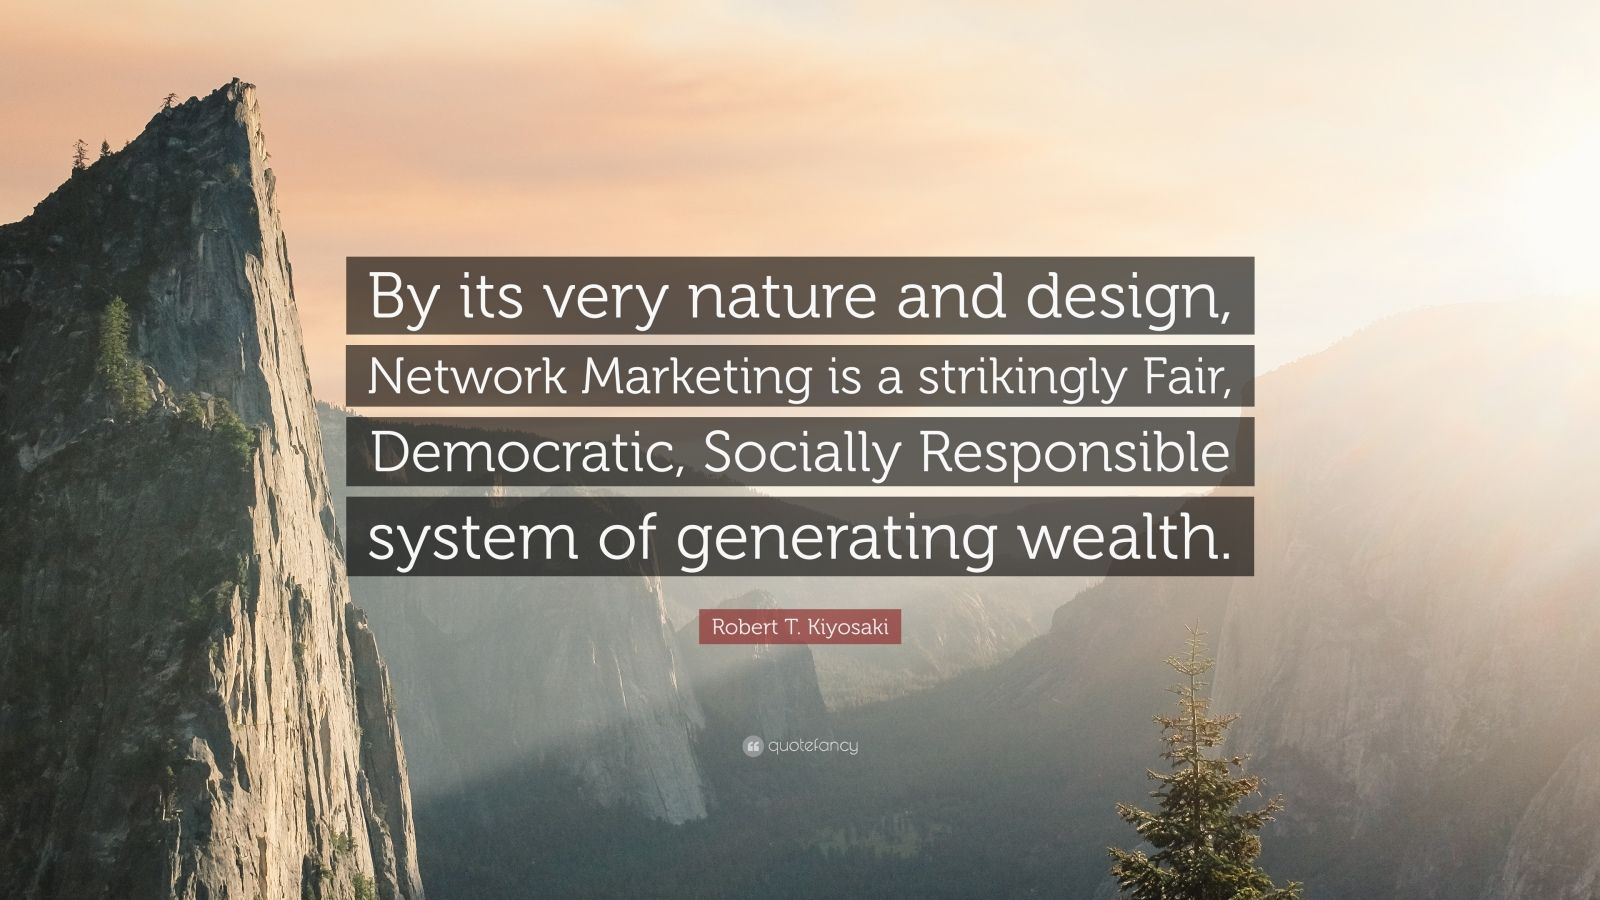 """Robert T. Kiyosaki Quote: """"By its very nature and design, Network Marketing is a strikingly Fair, Democratic, Socially Responsible system of generating wealth."""""""